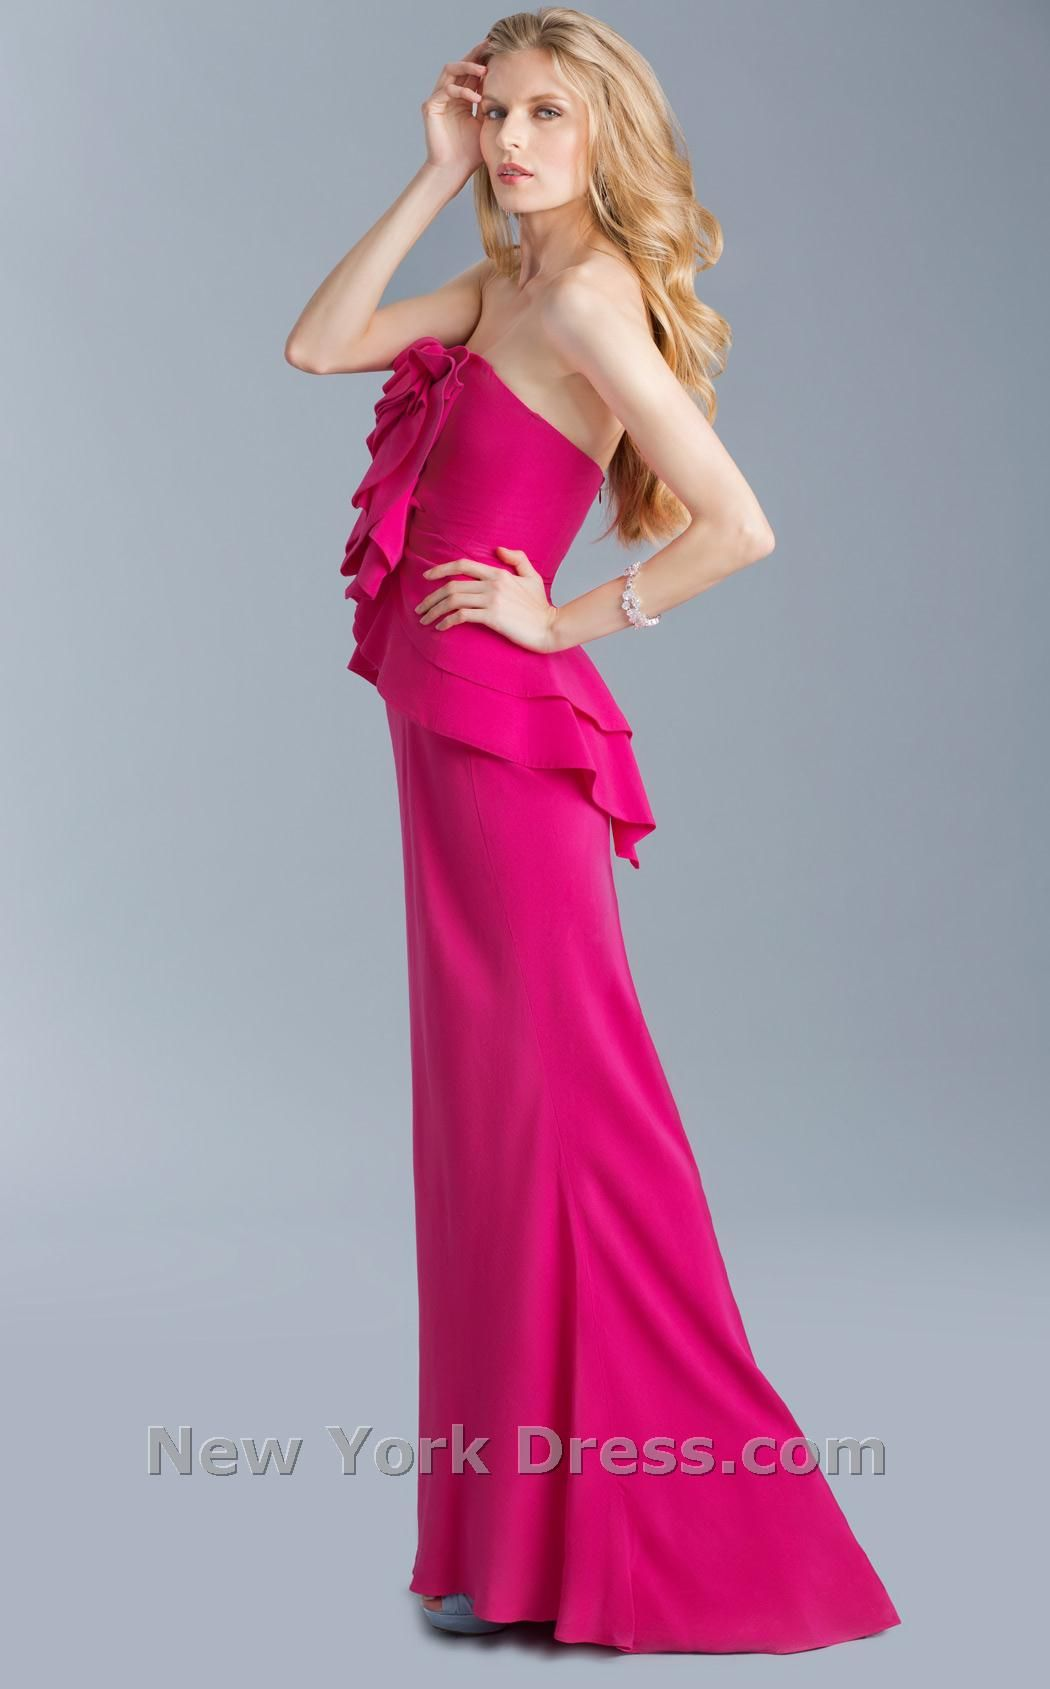 Colorful Prom Dress Stores In New York Mold - Womens Dresses & Gowns ...